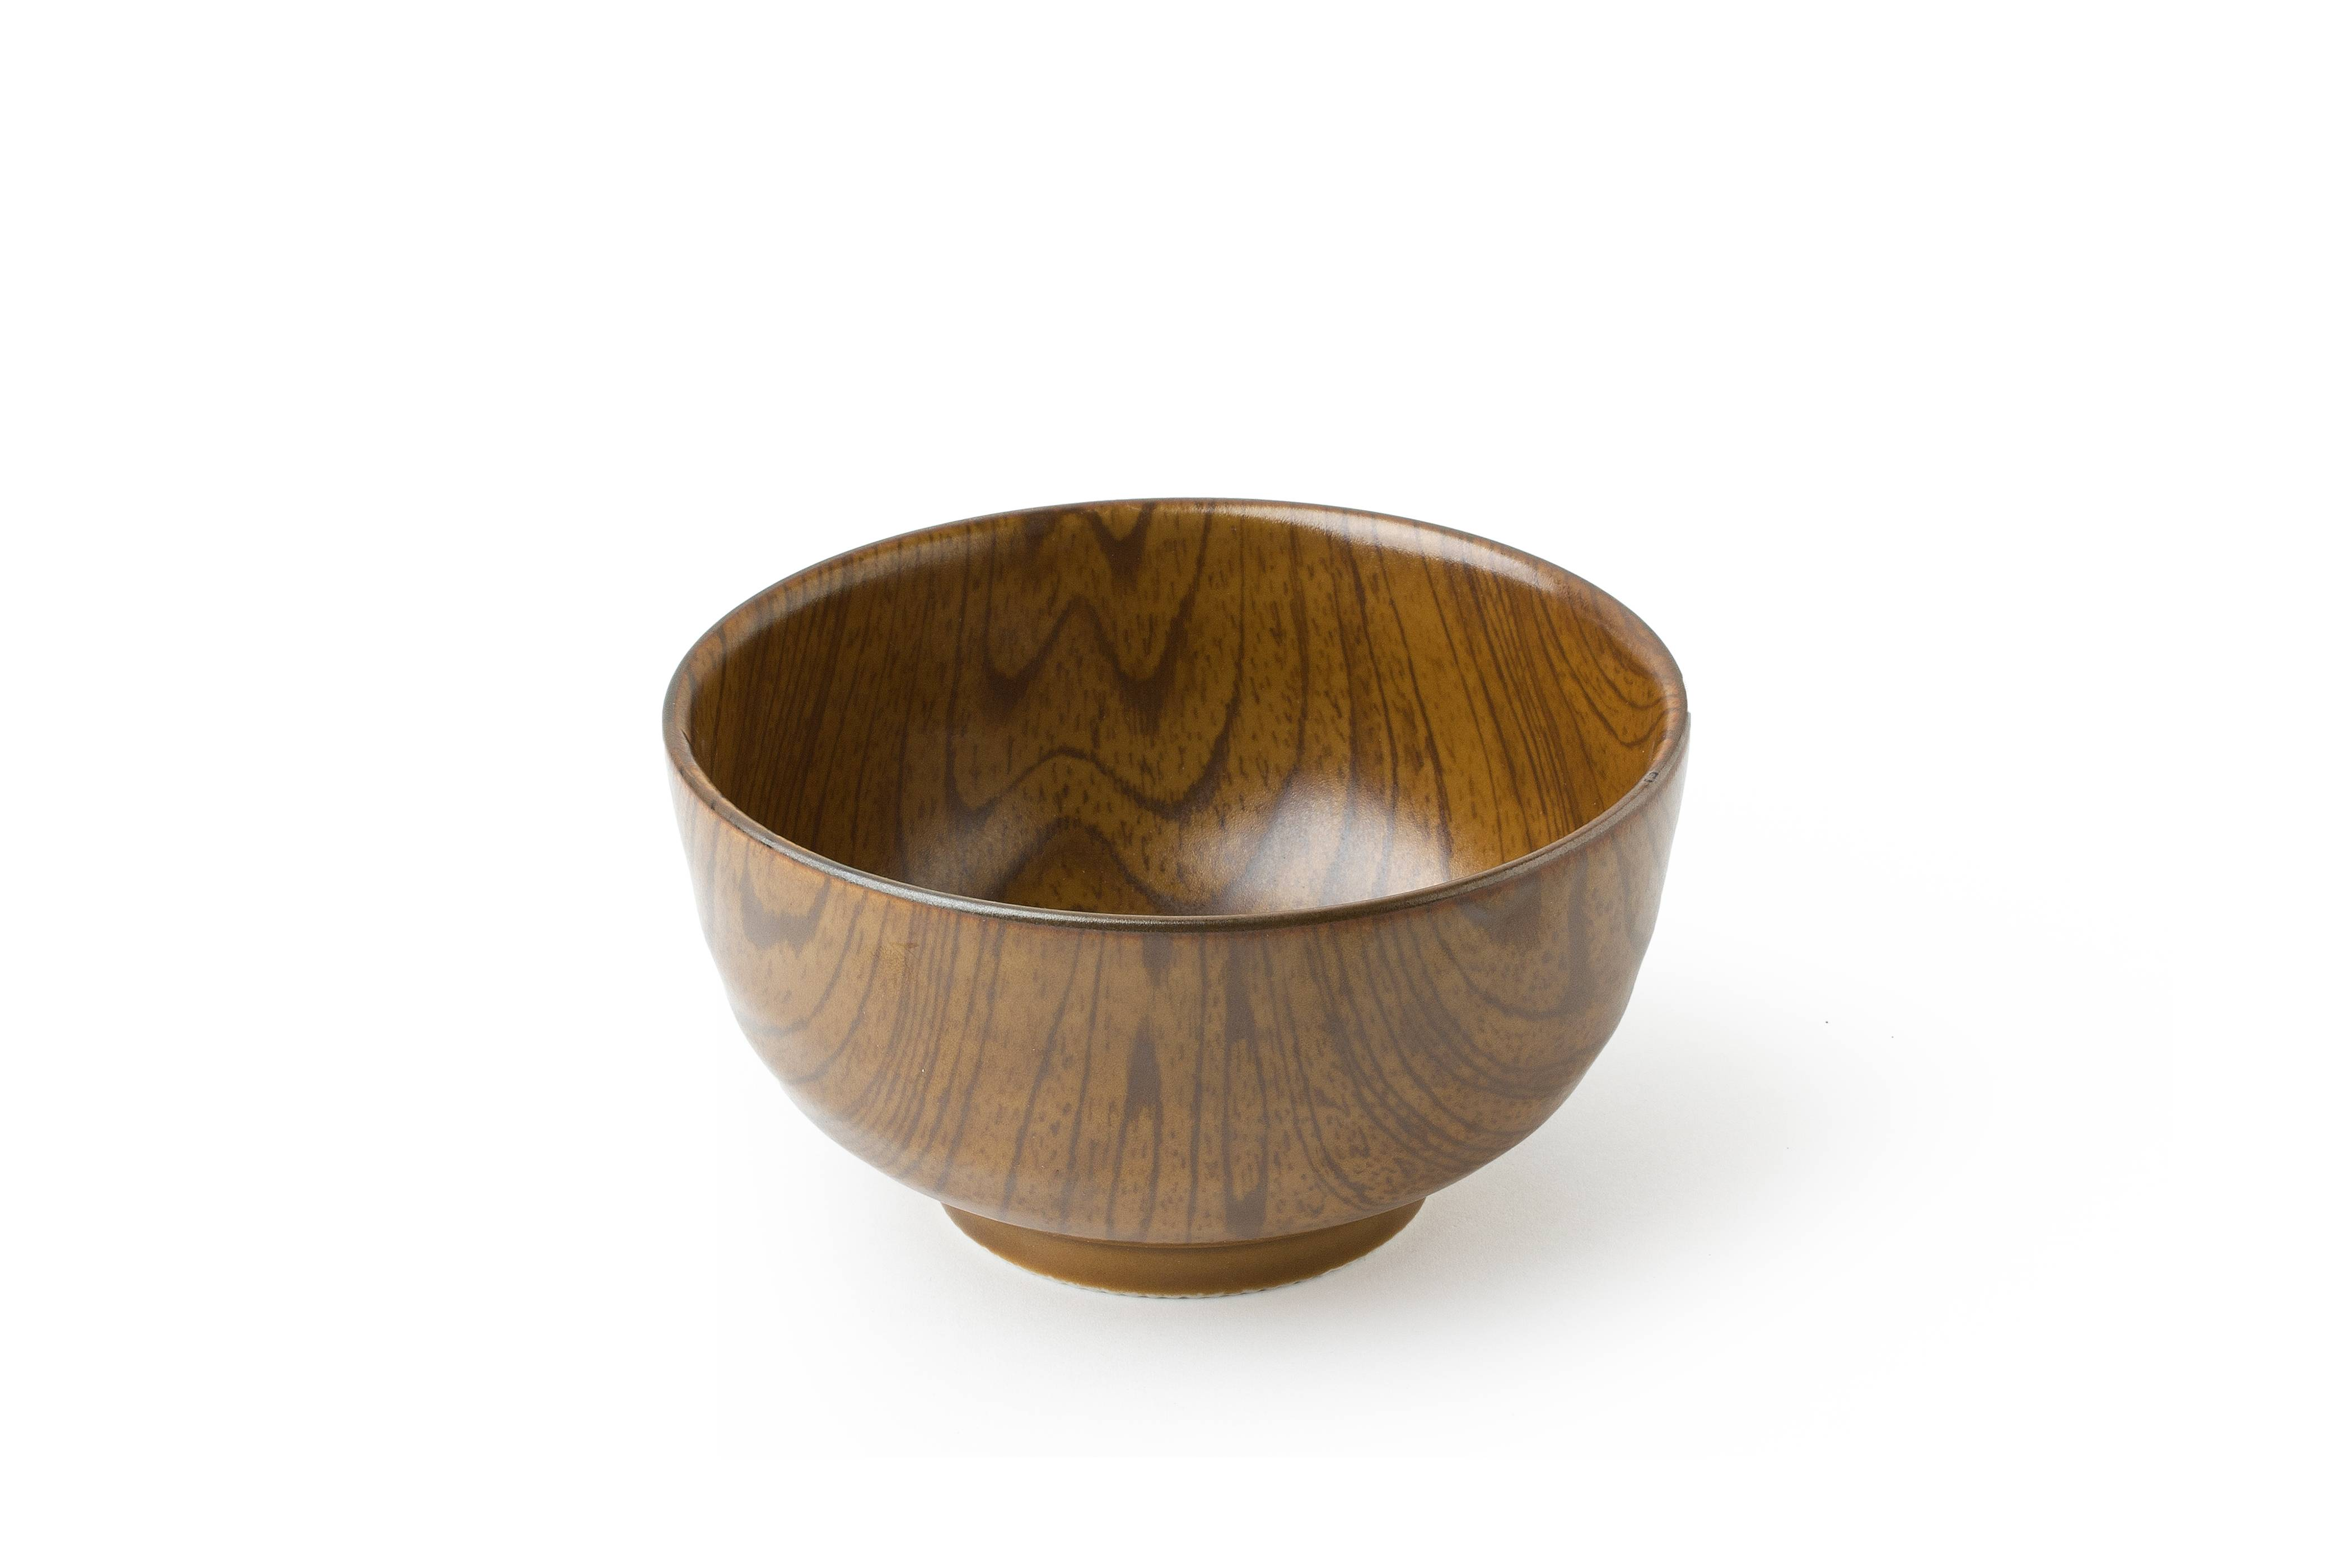 The surprise of this bowl is that it's not wood at all, but a realistically-patterned ceramic.